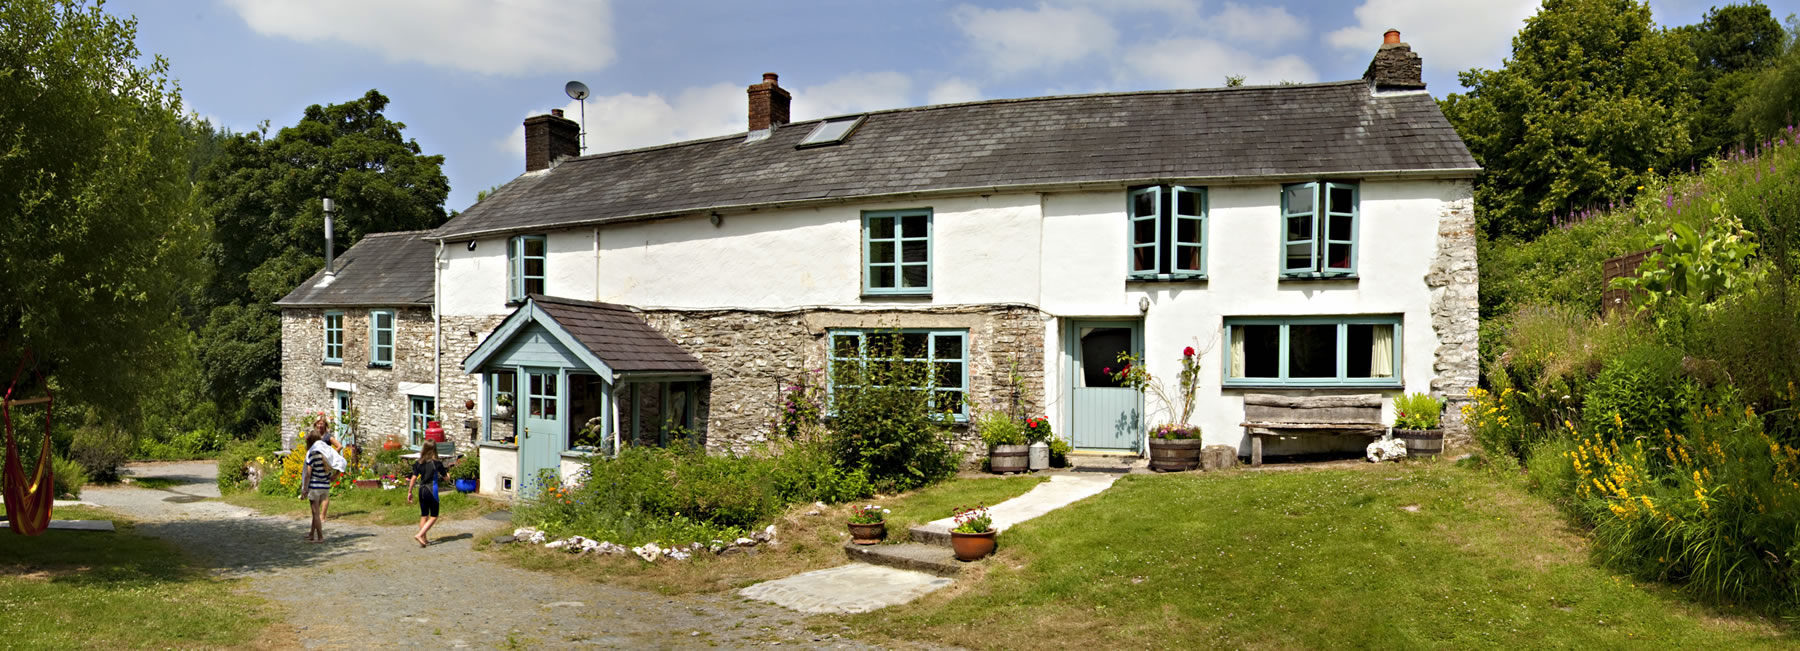 Penpynfarch farmhouse, based in amongst the woodland of the Gwyddil Valley